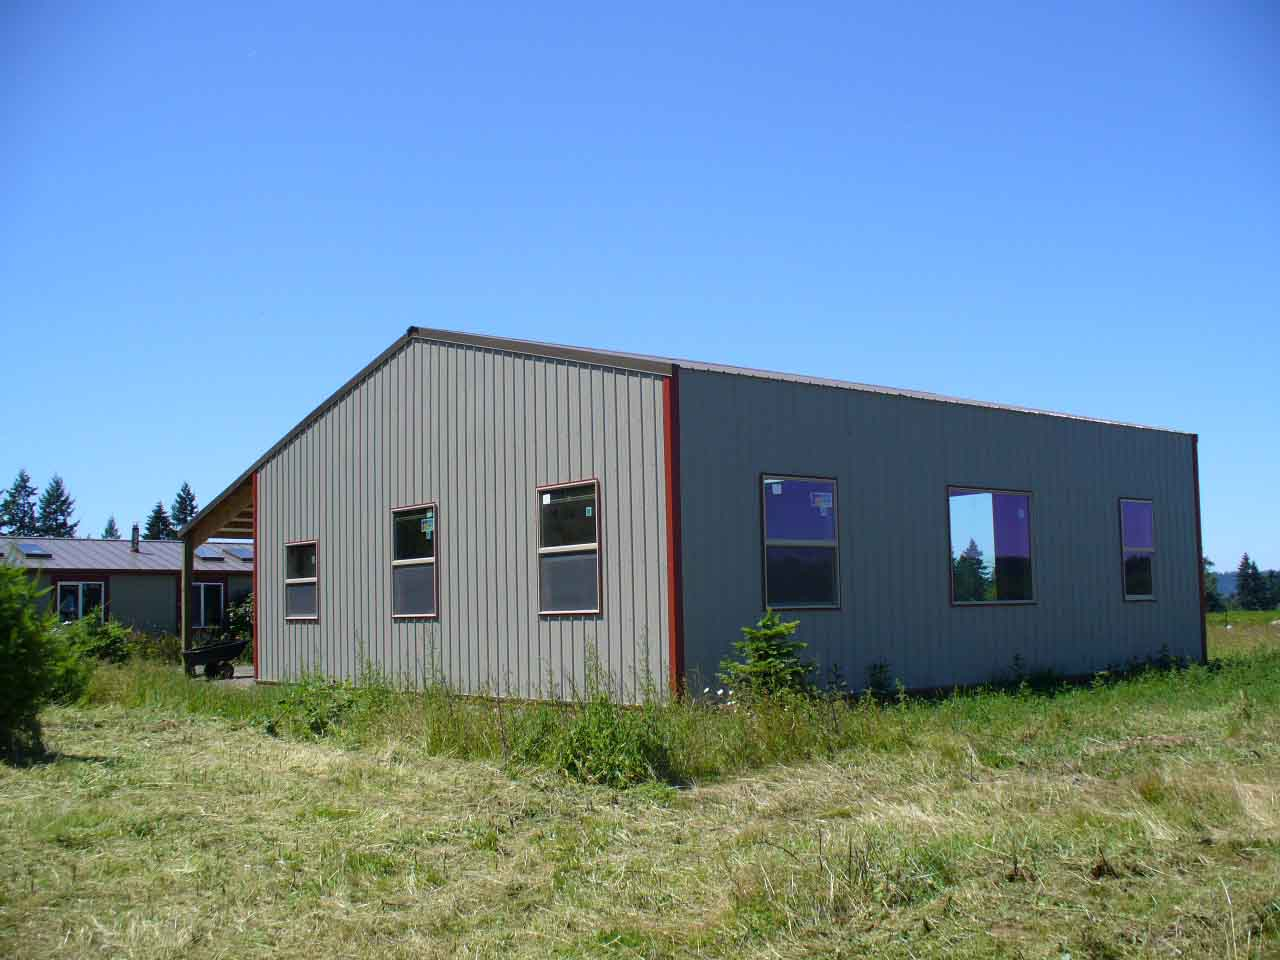 36'x48' Pole building with lots of windows